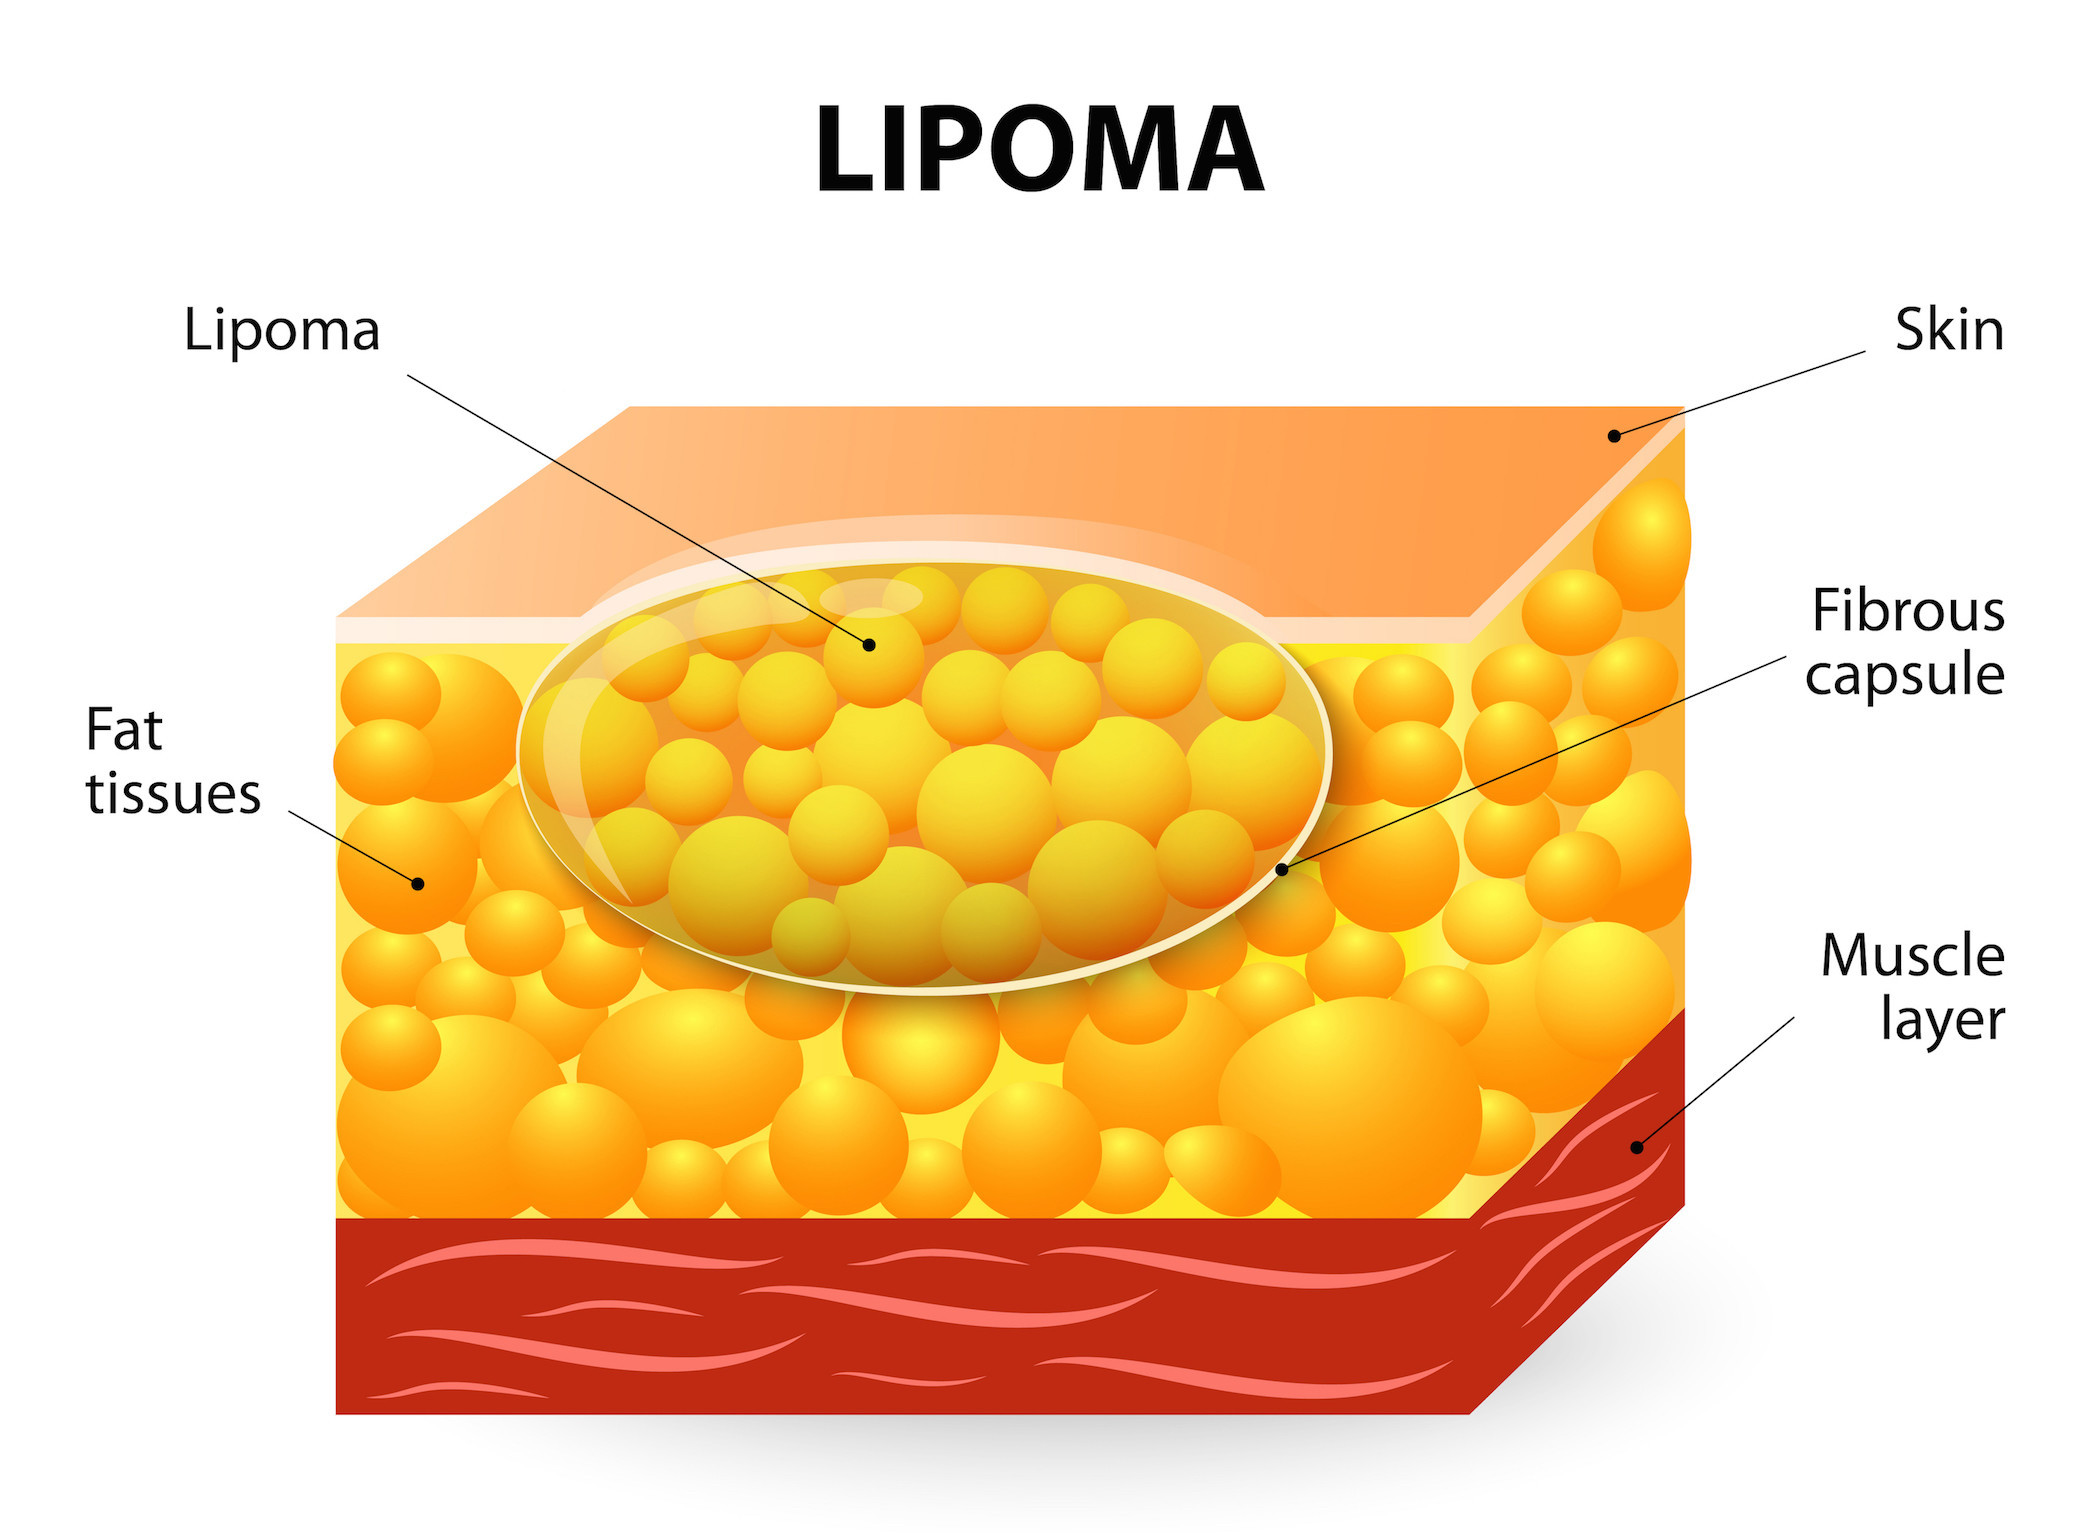 Lipoma removal the most effective method 75